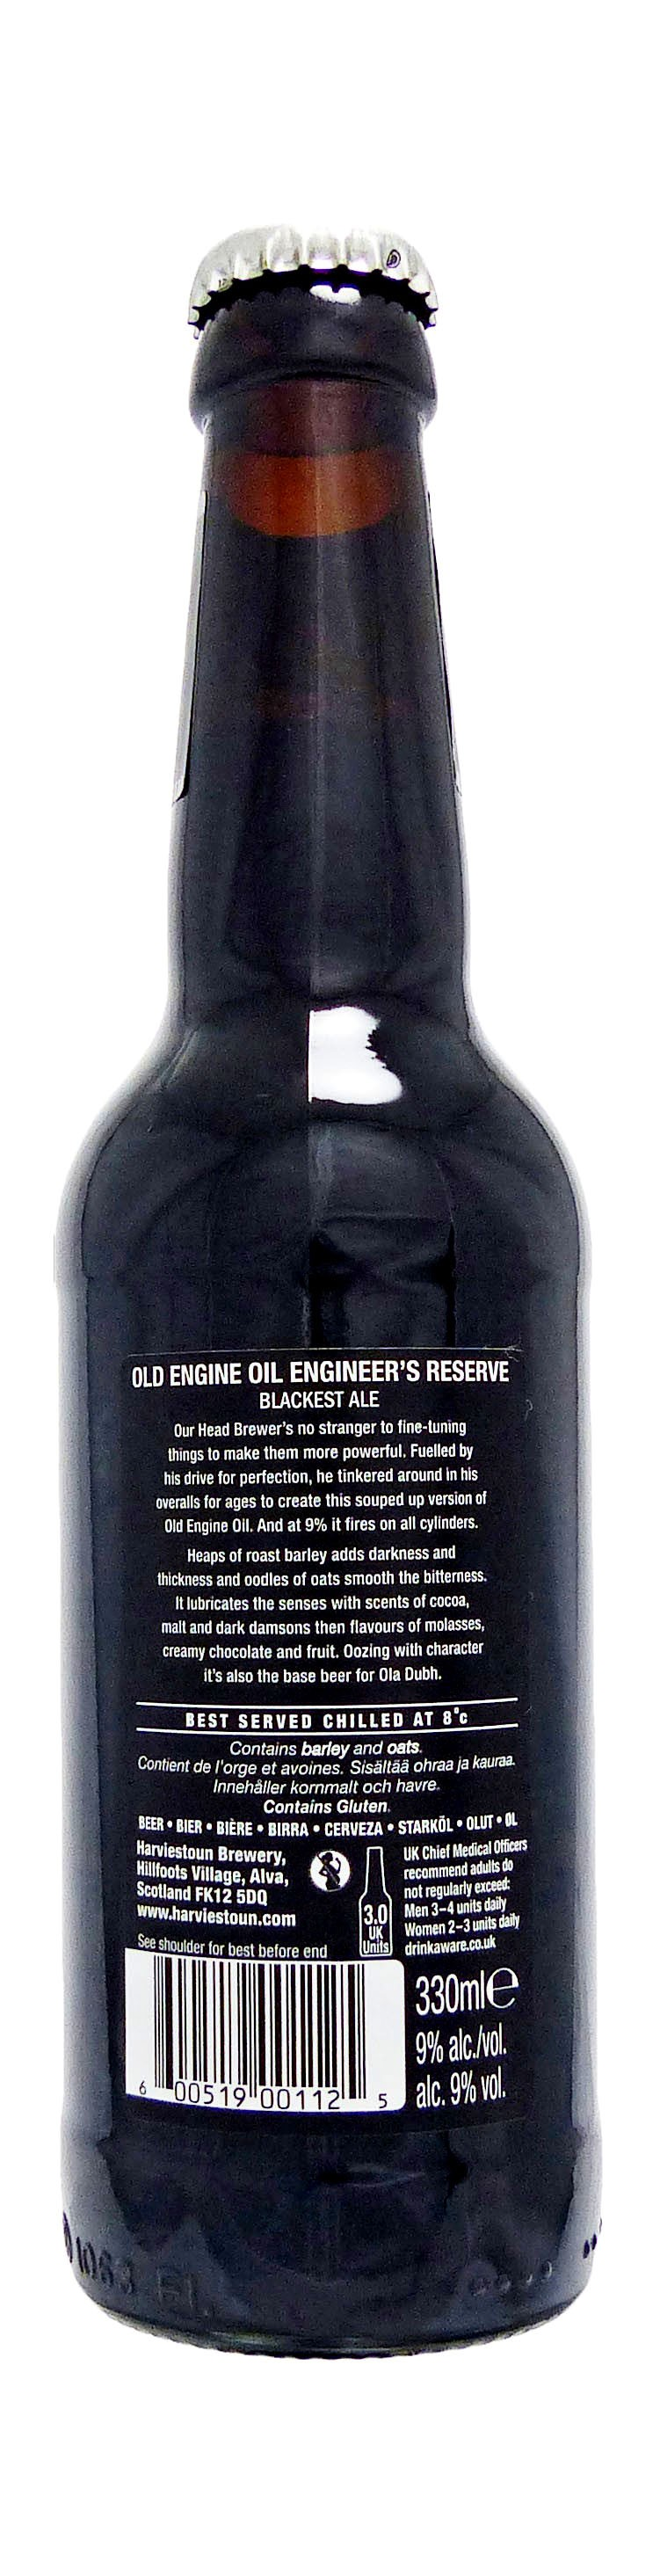 Old Engine Oil Engineer's Reserve face